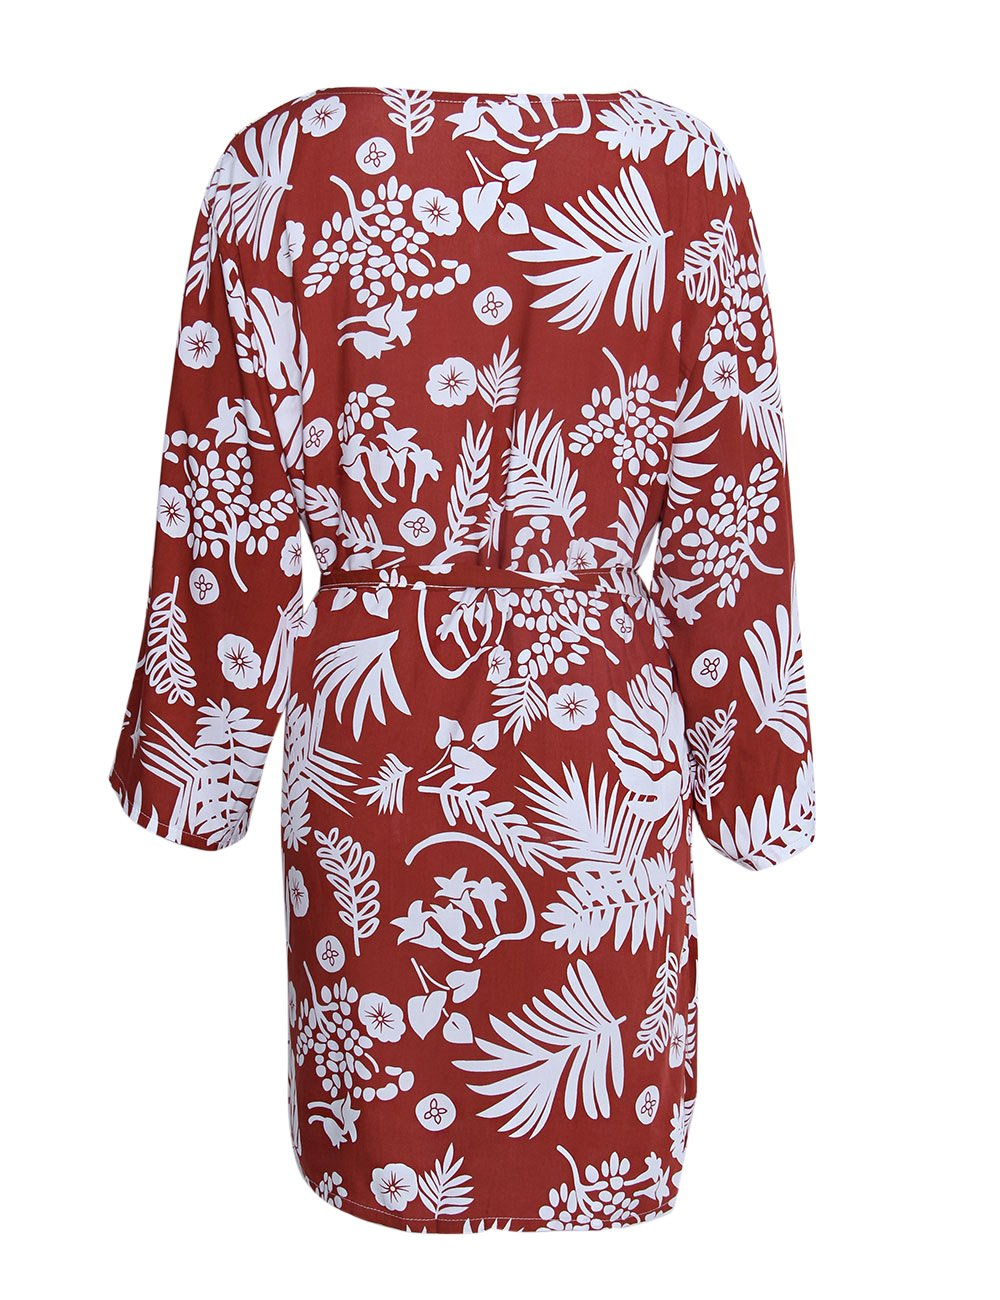 shermie Women's Floral Leaf Print Kimono Cardigan Cover up Swimwear with Belt Rust Red by shermie (Image #6)